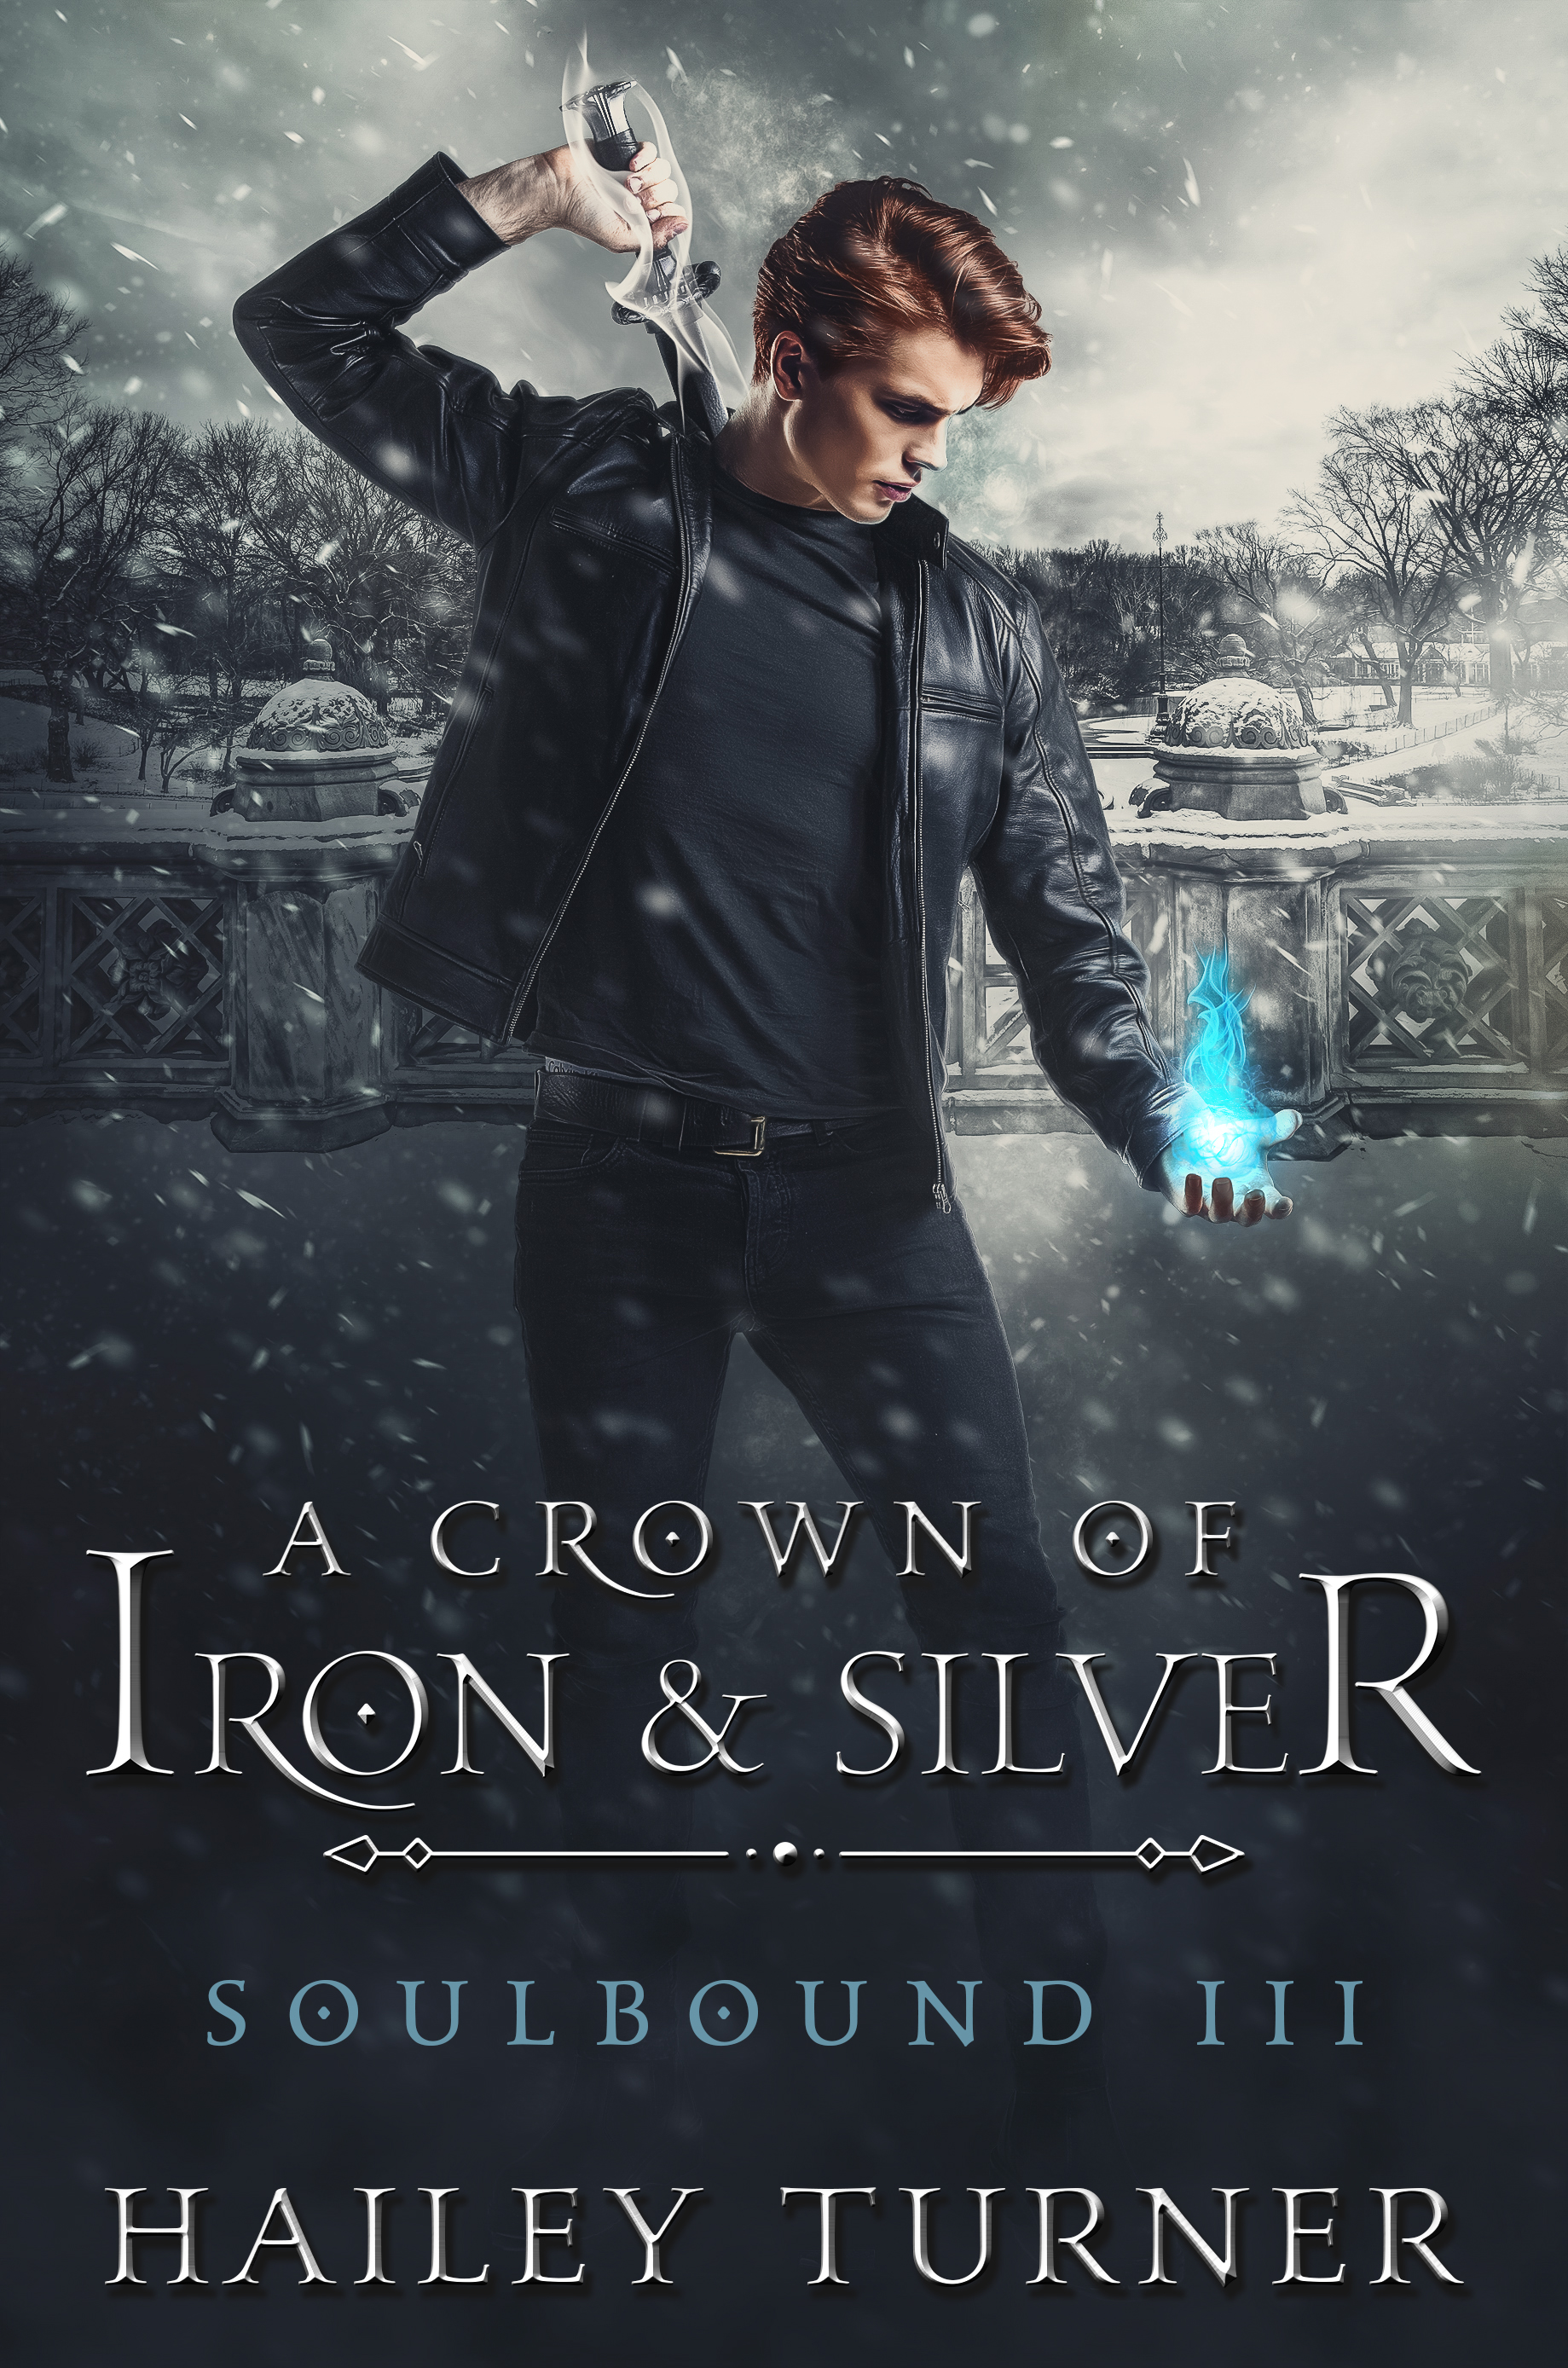 Guest Post and Giveaway: A Crown of Iron and Silver by Hailey Turner